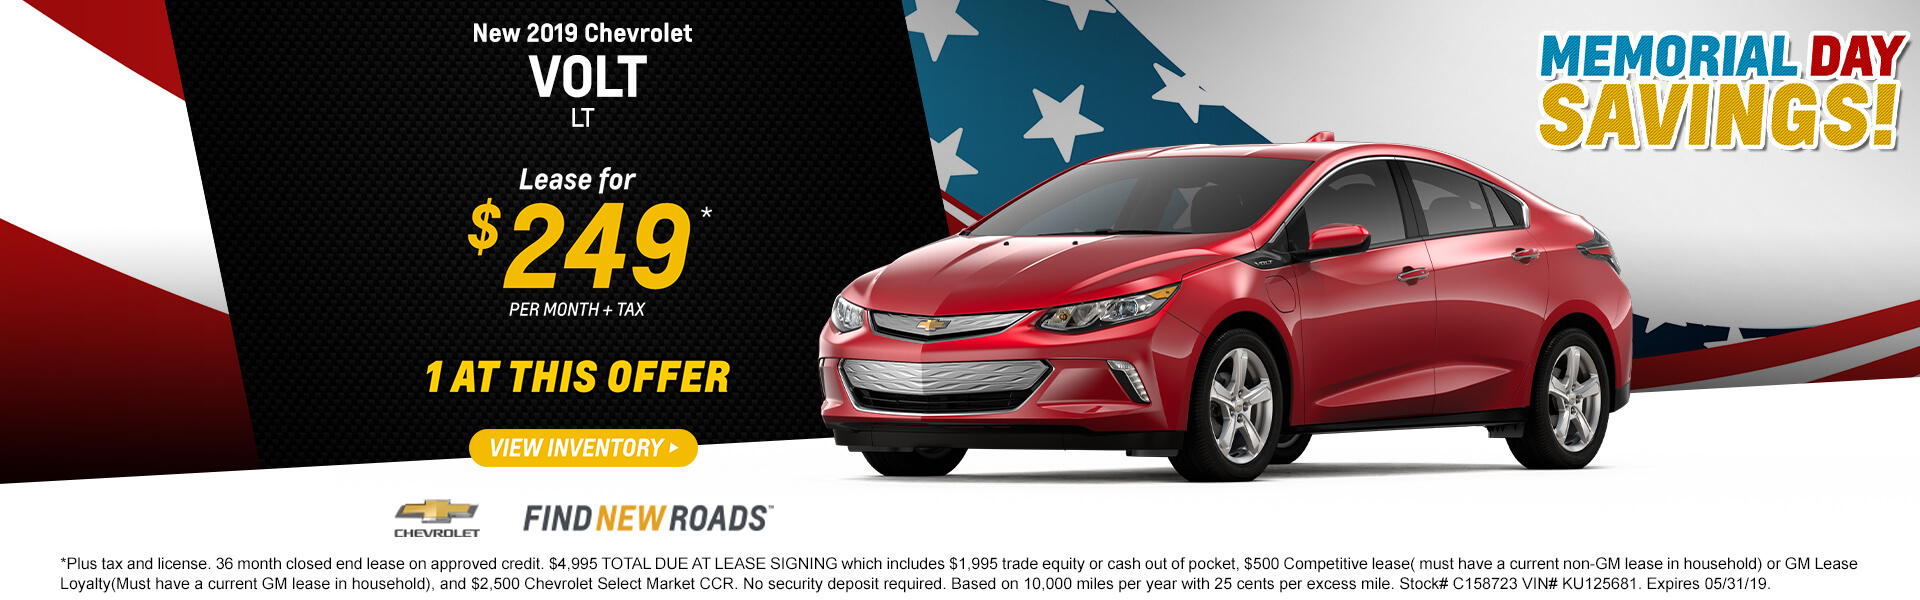 2019 Volt LT Lease $249 per month $4,995 TOTAL DUE AT LEASE SIGNING which includes $1,995 trade equity or cash out of pocket, $500 Competitive lease( must have a current non-GM lease in household) or GM Lease Loyalty(Must have a current GM lease in household), and $2,500 Chevrolet Select Market CCR. No security deposit required. Based on 10,000 miles per year with 25 cents per excess mile. Stock# C158743 VIN# KU126627. Expires 05/31/19.